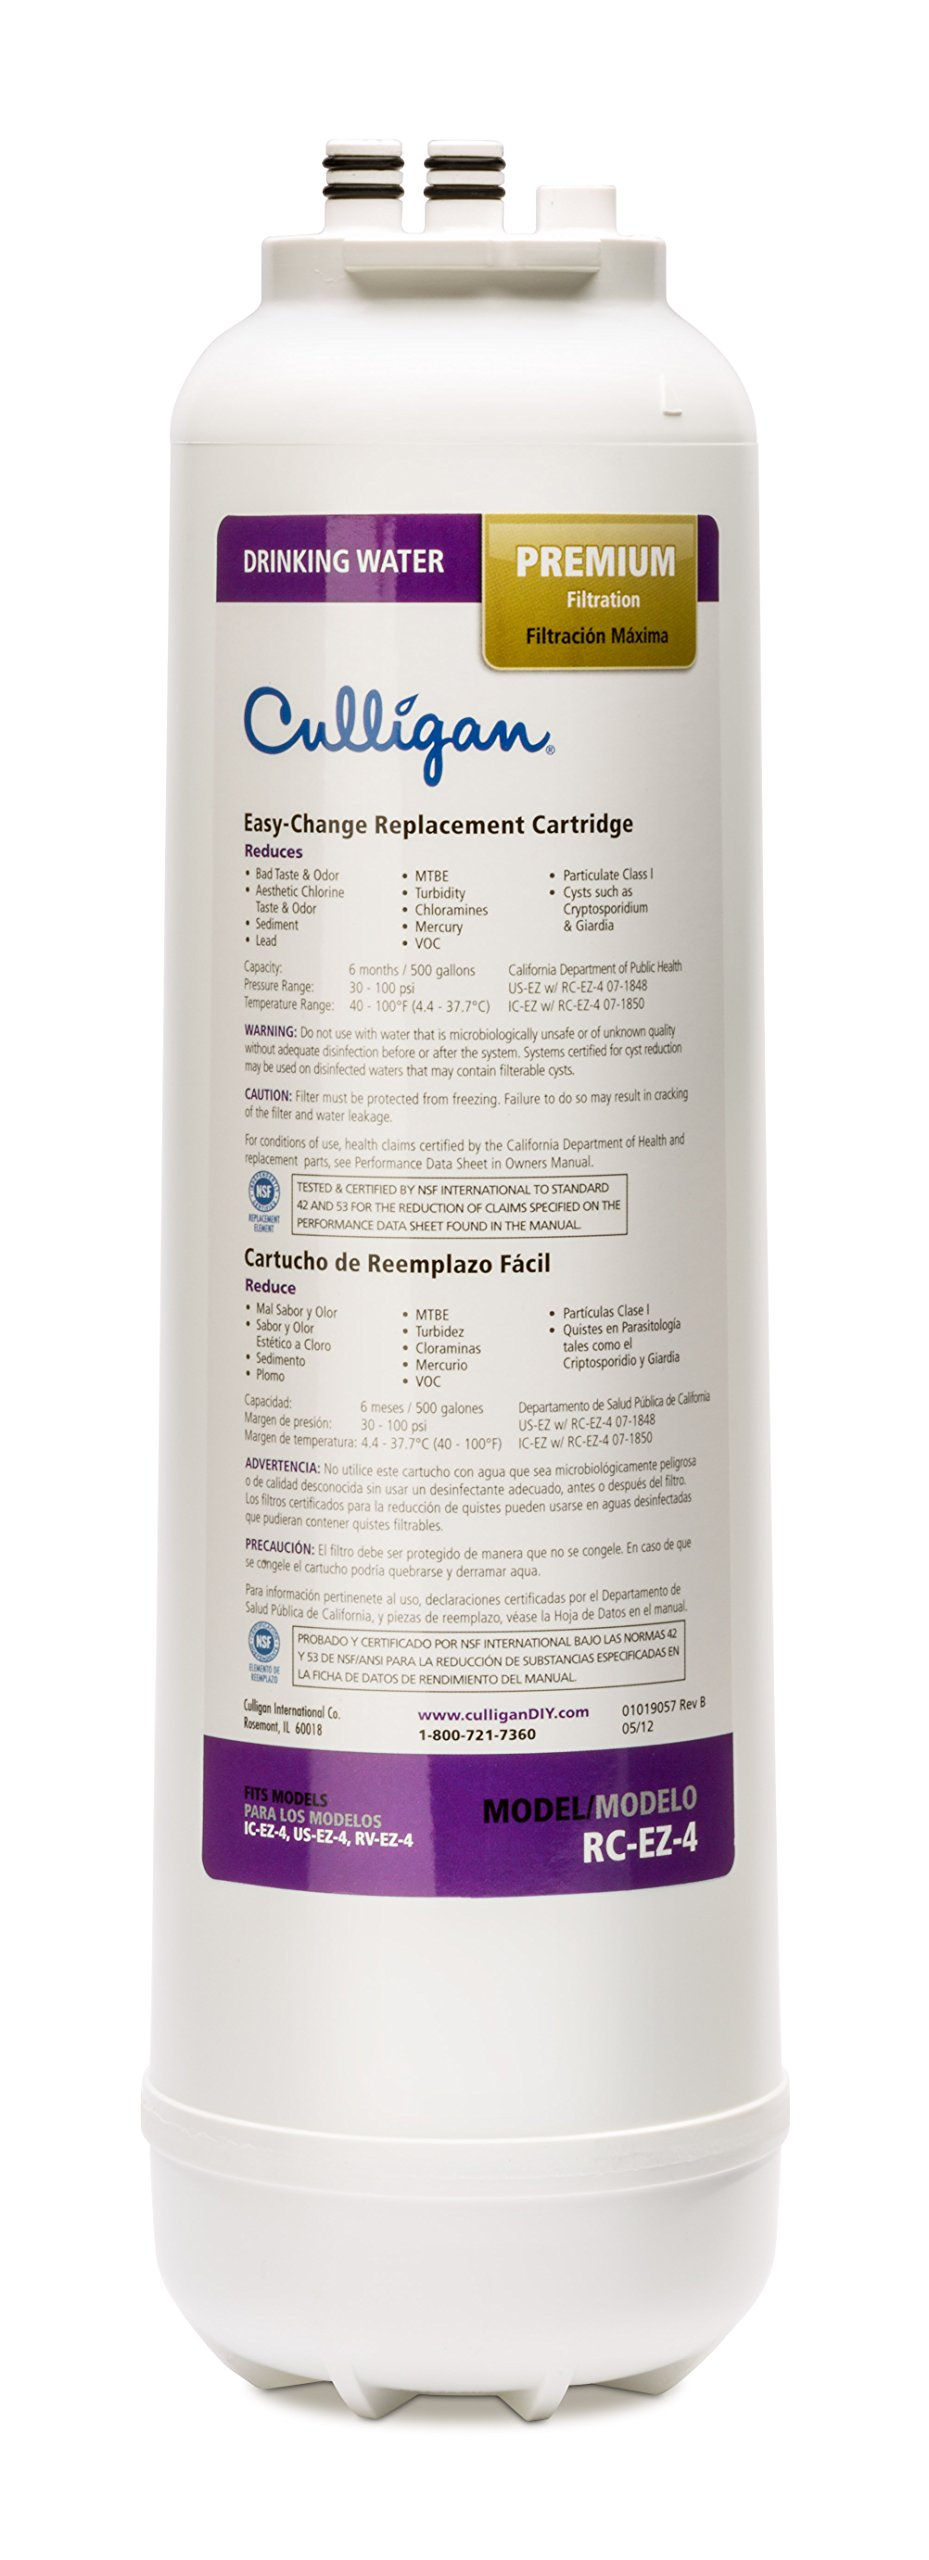 Culligan RC-EZ-4 EZ-Change Premium Water Filtration Replacement Cartridge, 500 Gallons by Culligan (Image #1)